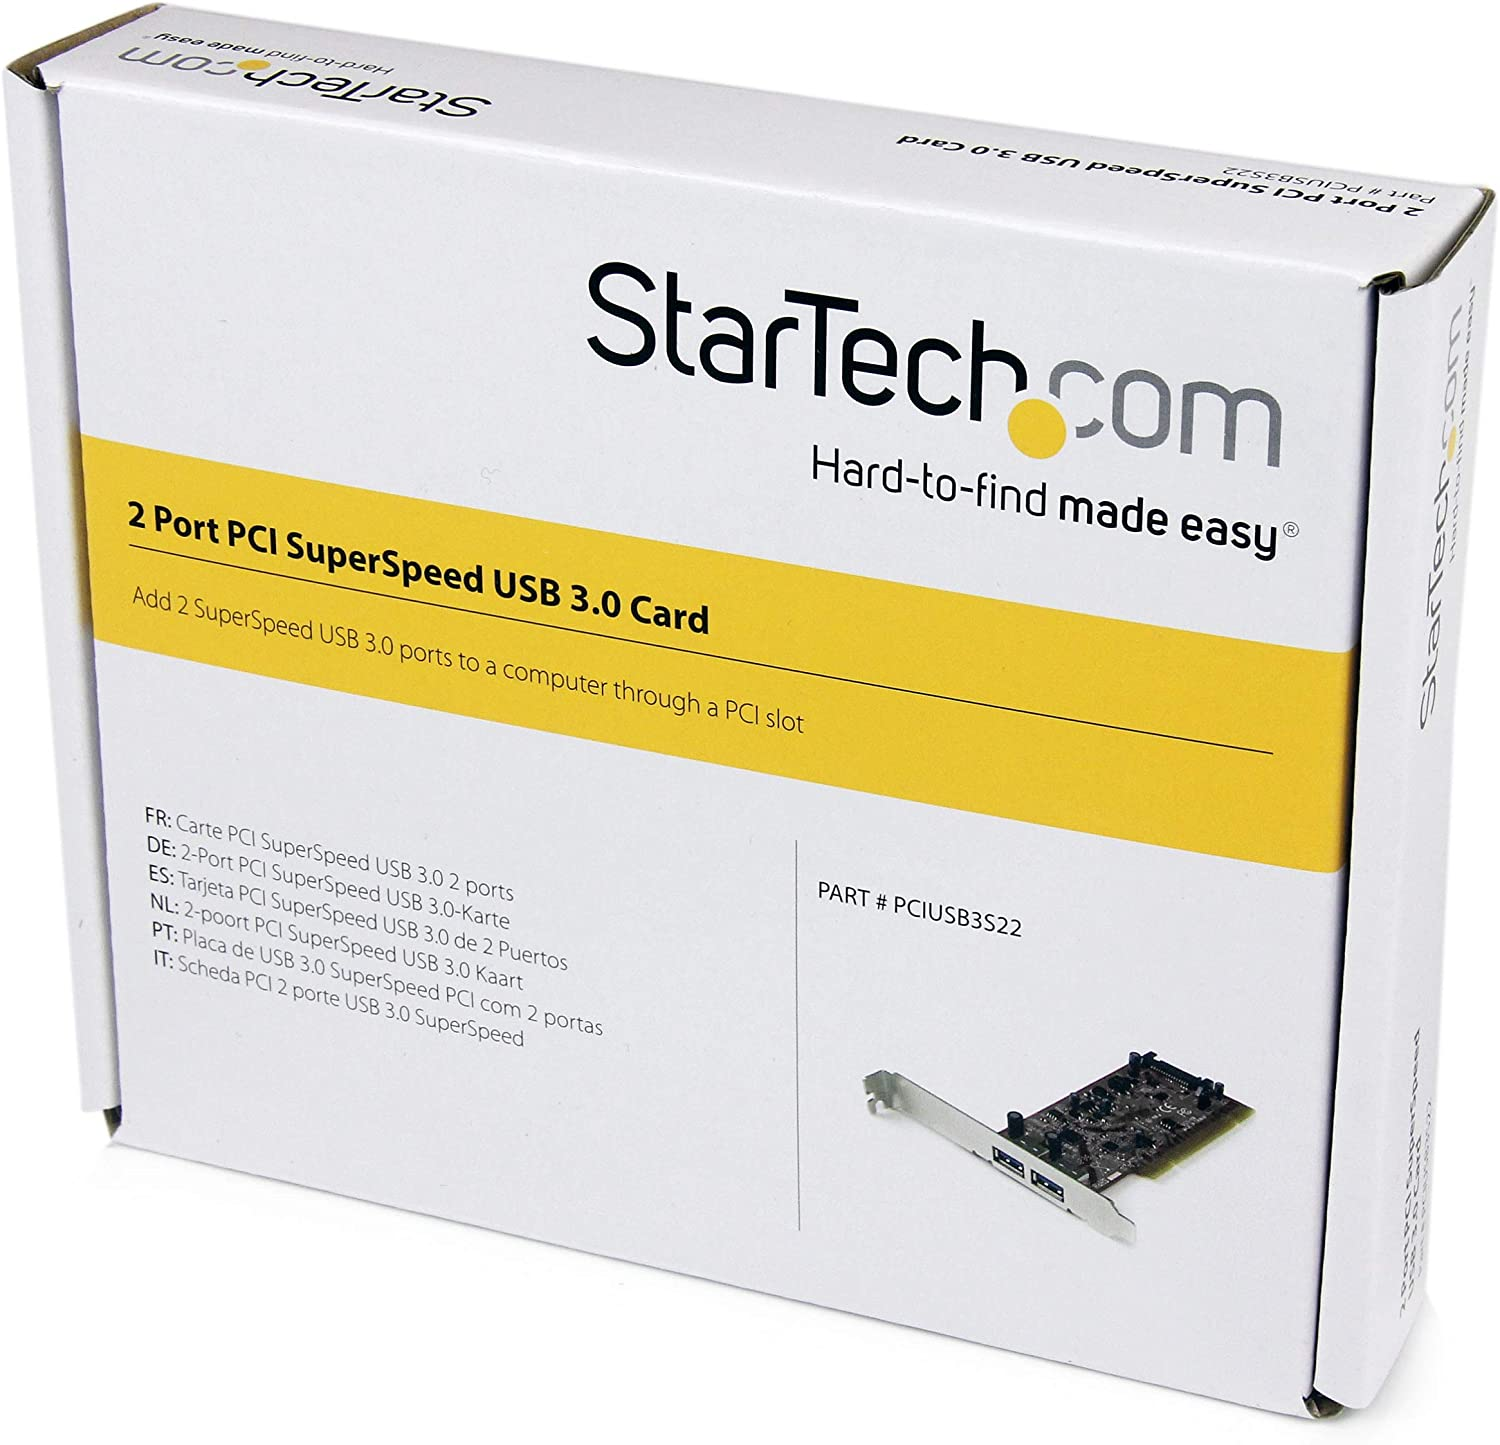 StarTech.com 2 Port PCI SuperSpeed USB 3.0 Adapter Card with SATA Power - Dual Port PCI USB 3 Controller Card (PCIUSB3S22)